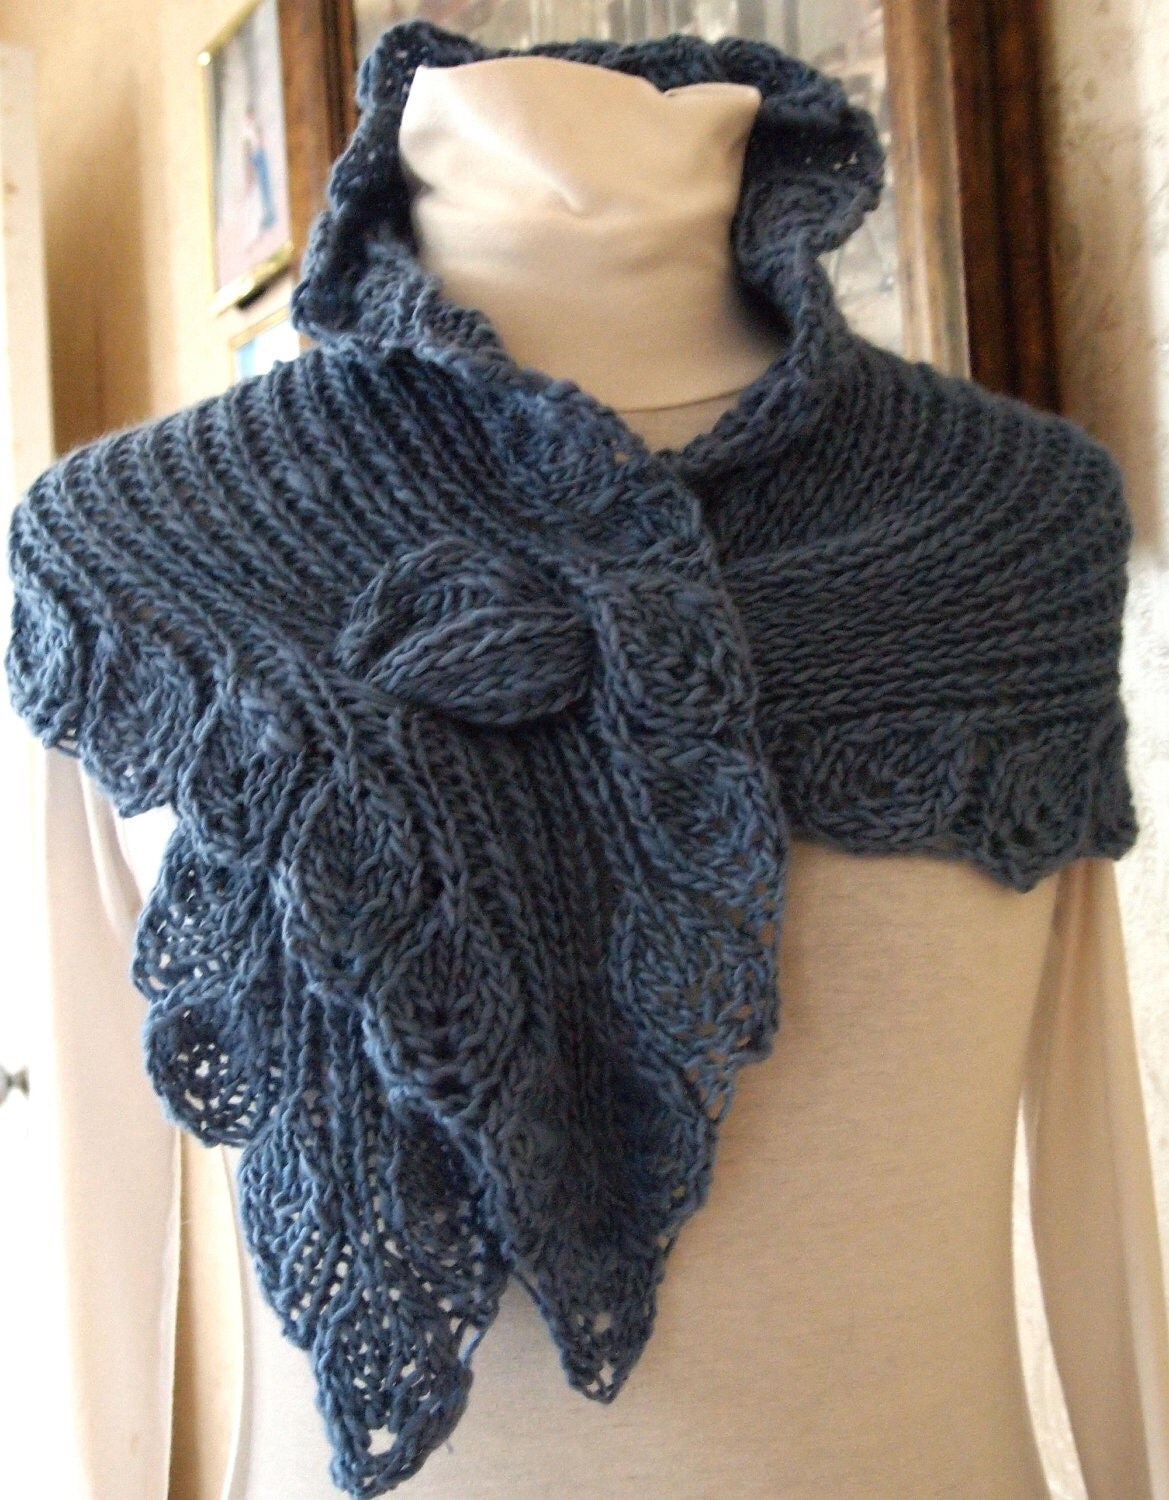 Knitting Pattern For A Ruffle Scarf : Scarf Knitting Pattern Ruffle